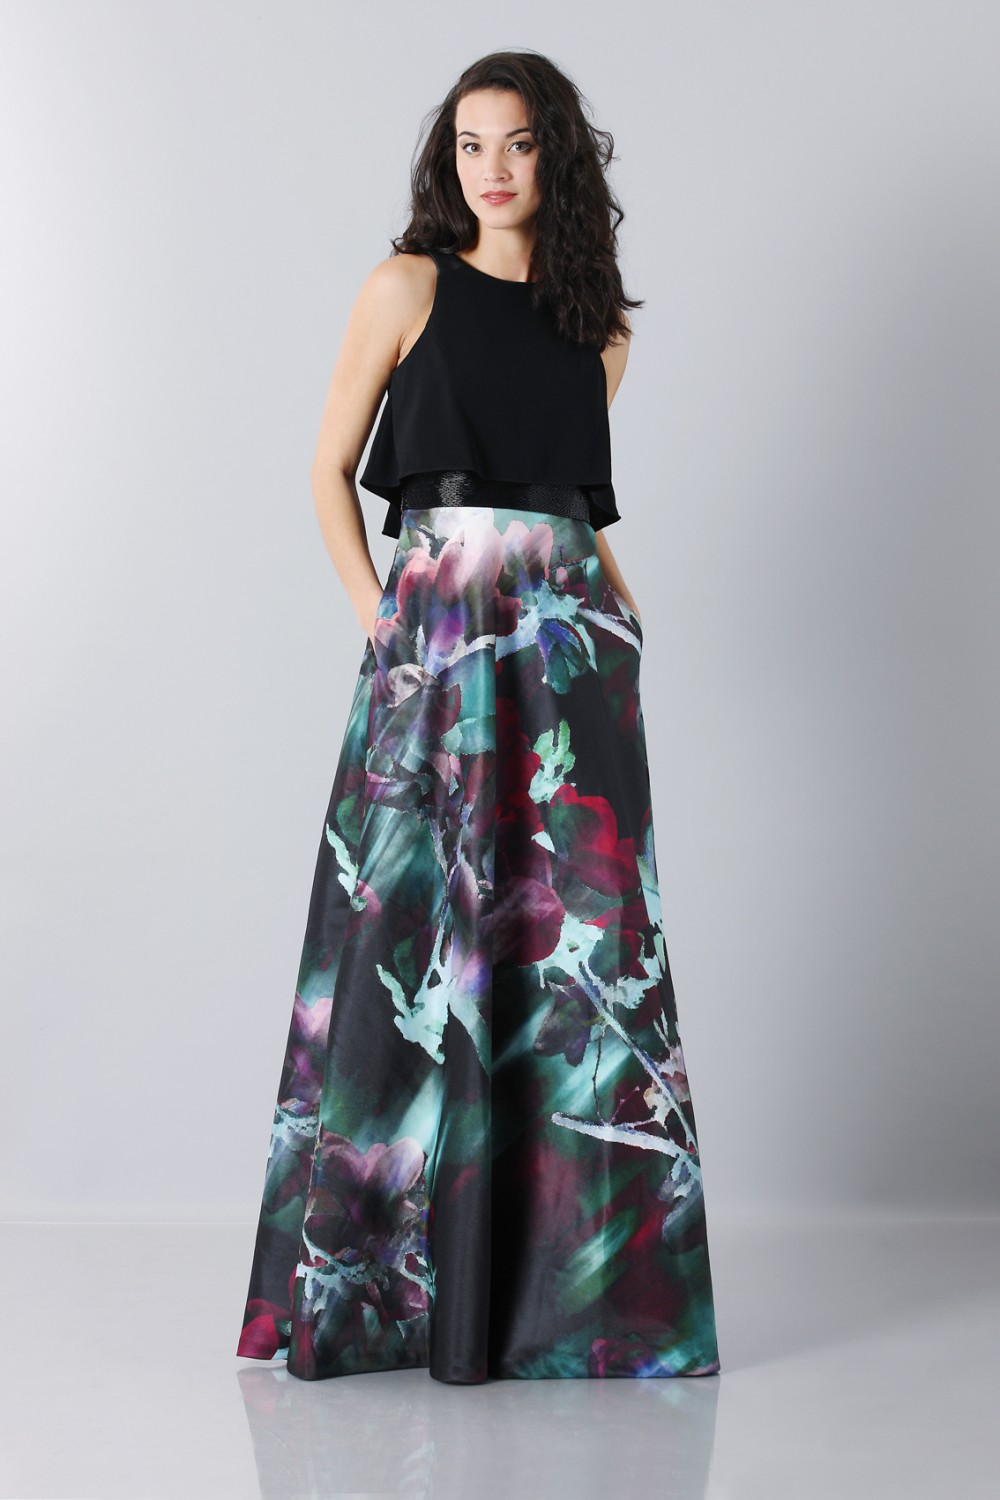 Crop top and floral printed skirt dress